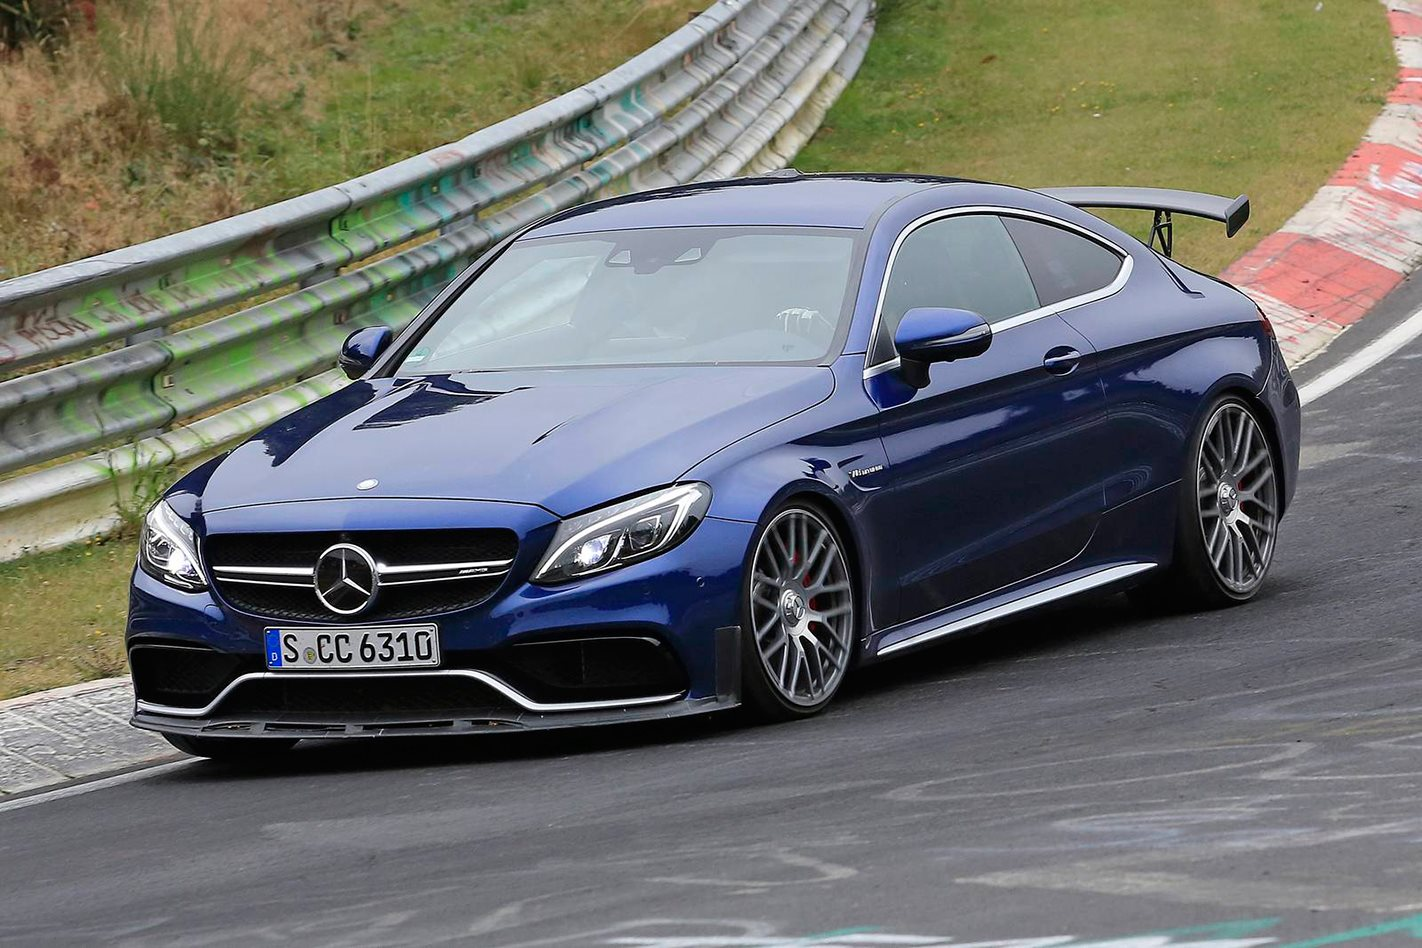 Amg Says No To C63 R As Gt Black Series Closes In